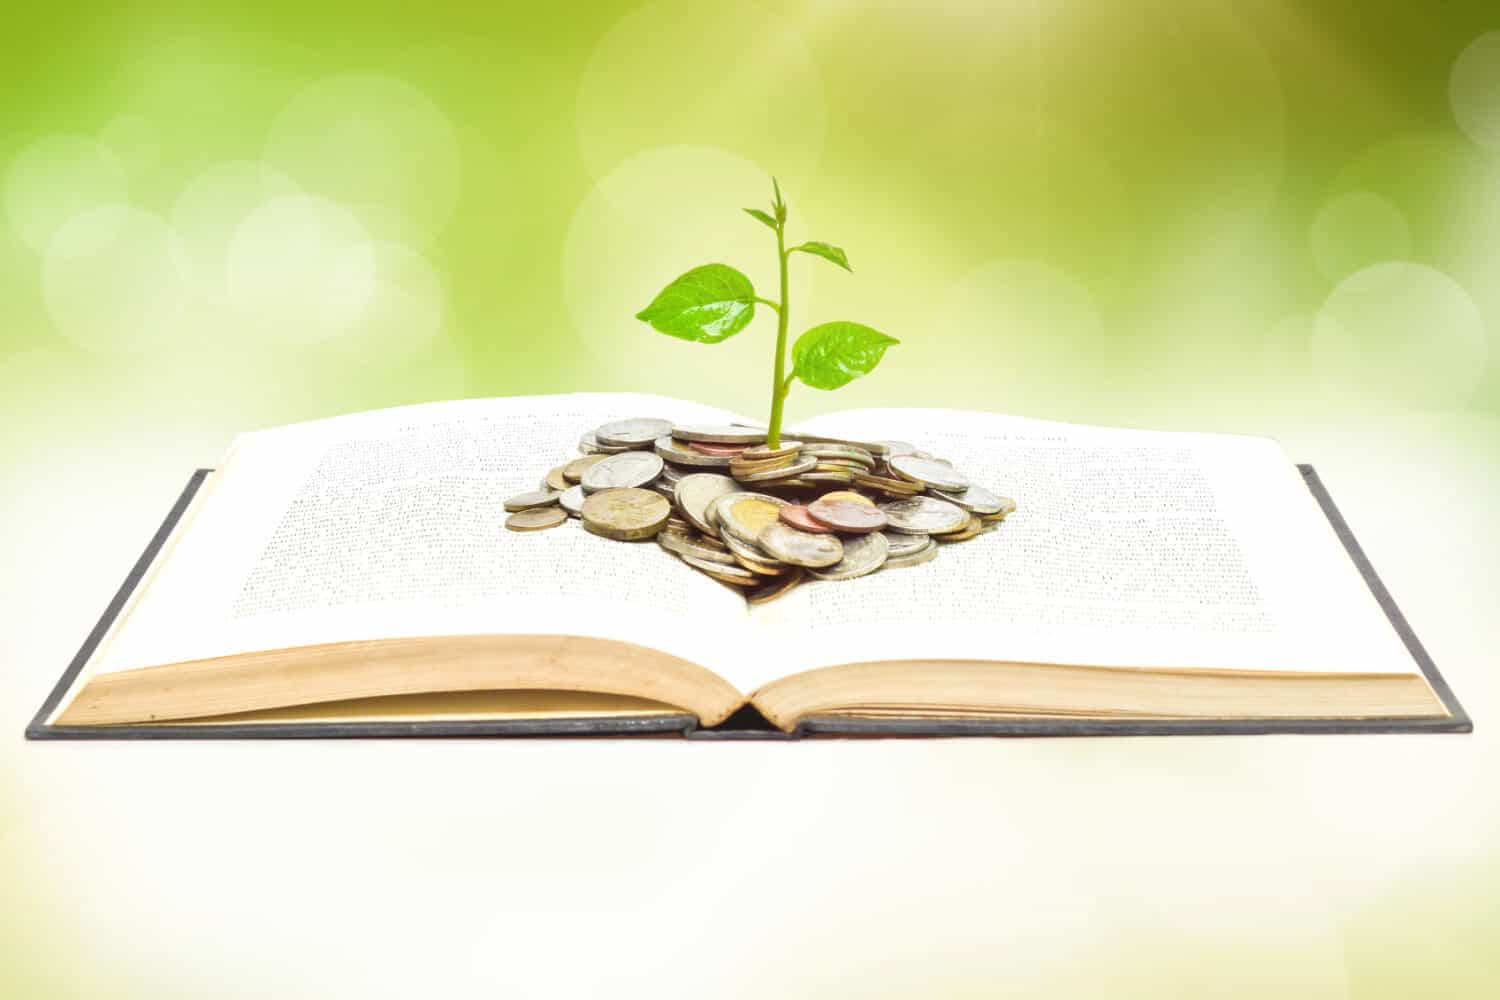 Loose change in an open book is sprouting a small plant